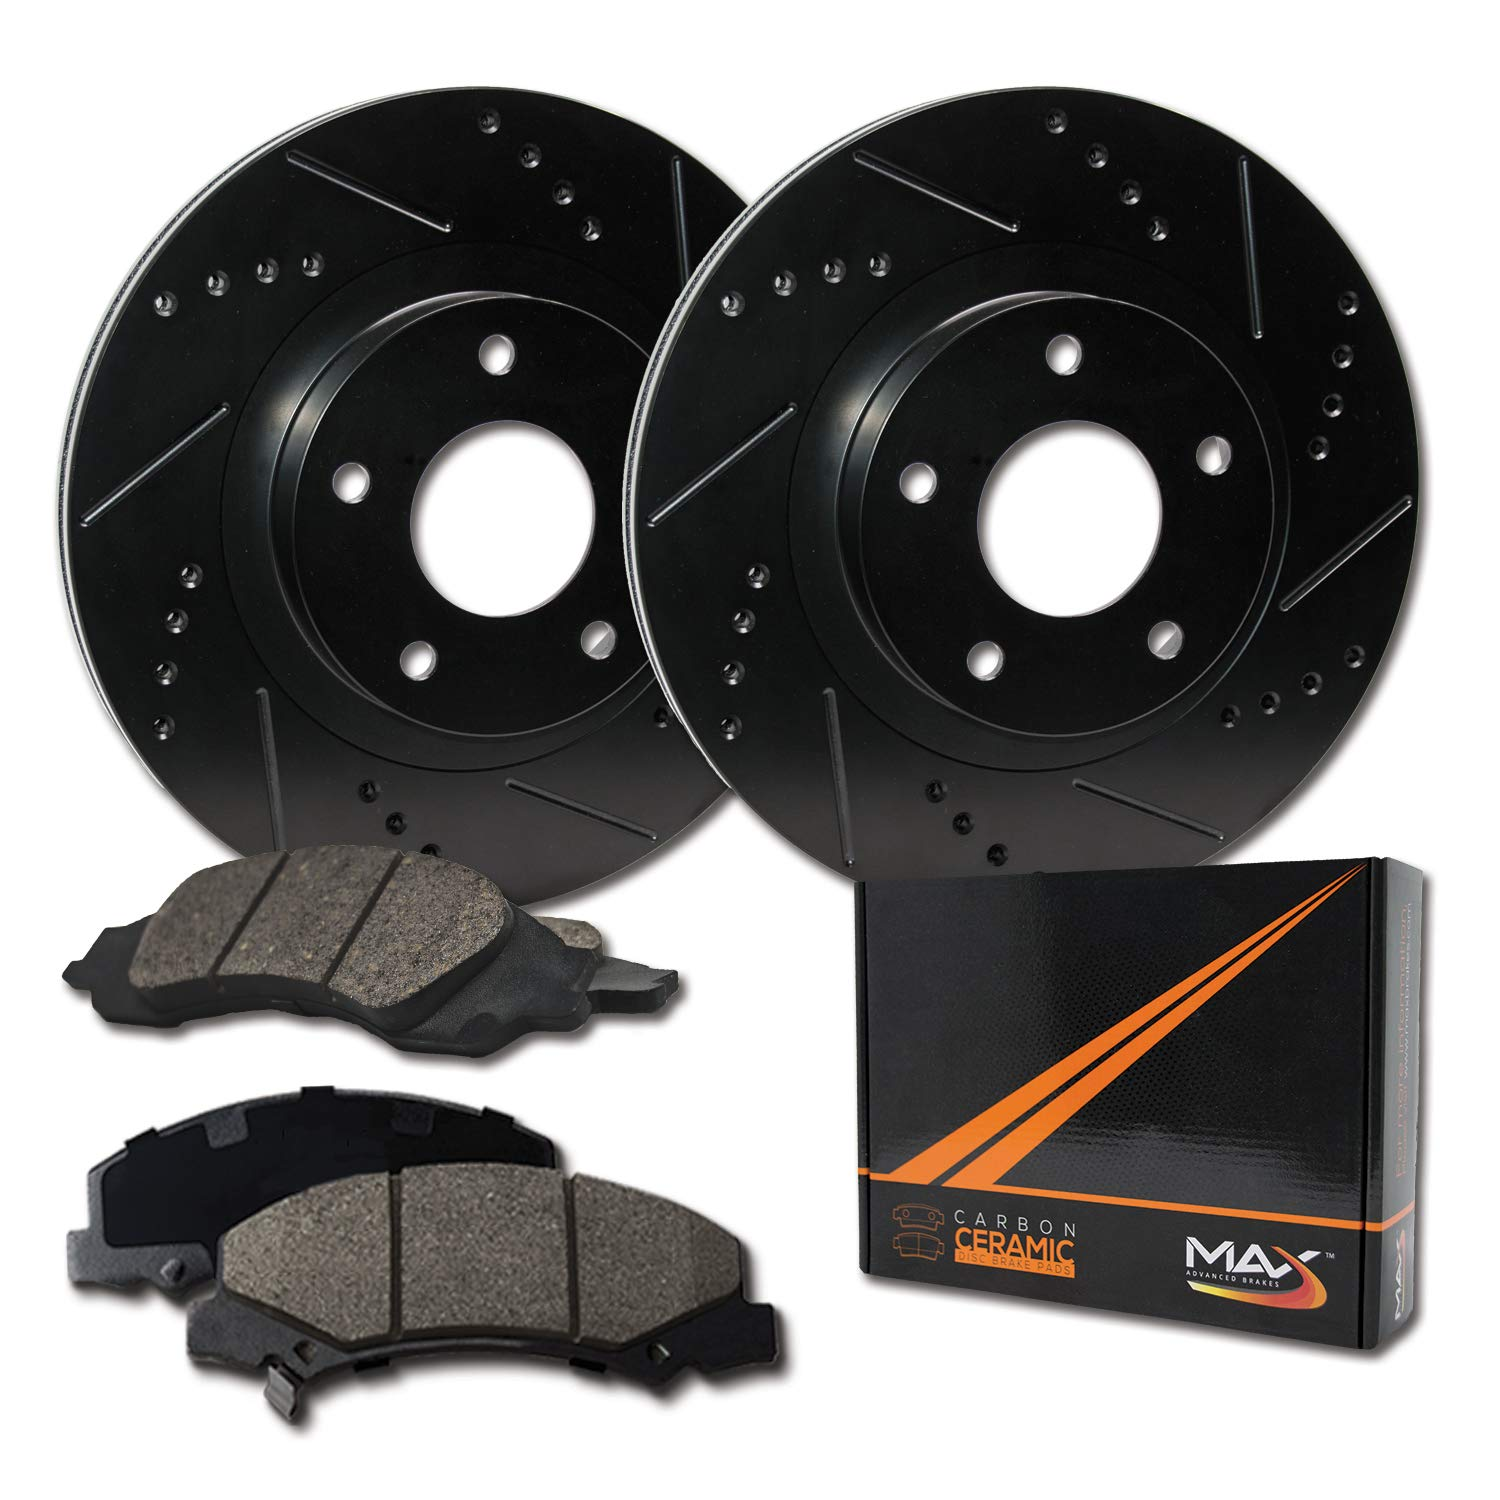 Max Brakes E-Coated Slotted|Drilled Rotors w/Ceramic Brake Pads Front Elite Brake Kit KT081981 [Fits:2003-2005 Mercedes Benz C240 | 2006-2007 C280 | 2003-2005 C320 | 2006-2007 C350] Max Advanced Brakes